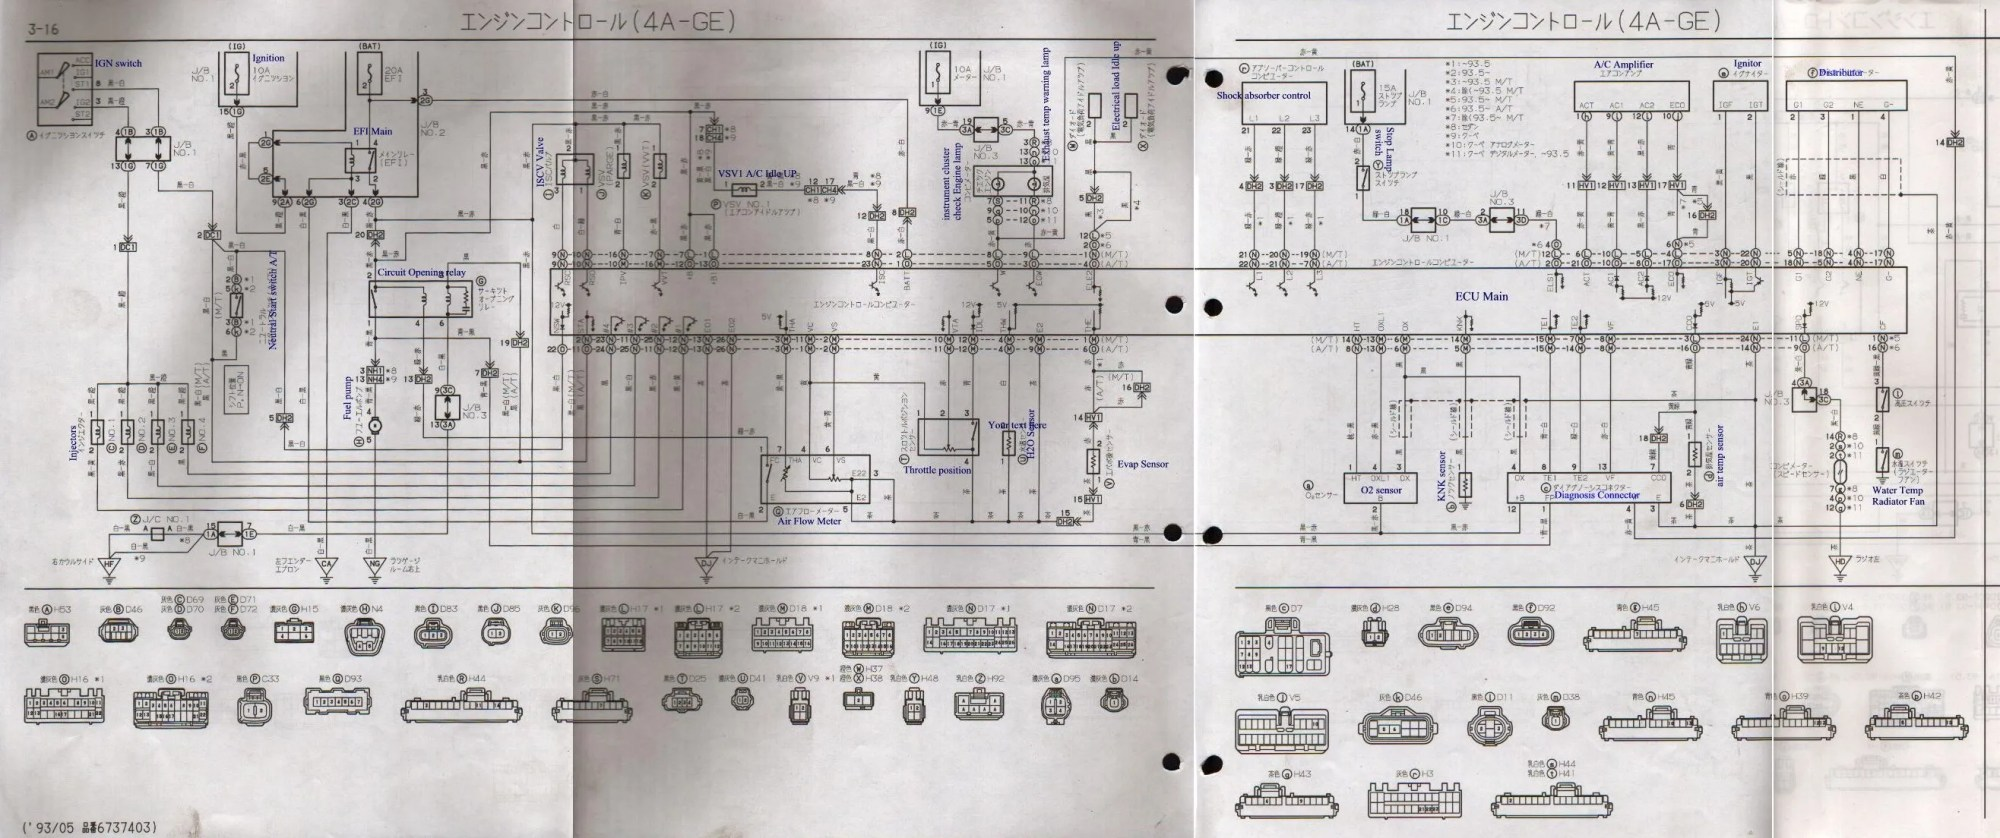 hight resolution of wiring diagram toyota starlet 97 trusted wiring diagram u2022 rh soulmatestyle co daihatsu charade 1986 1991